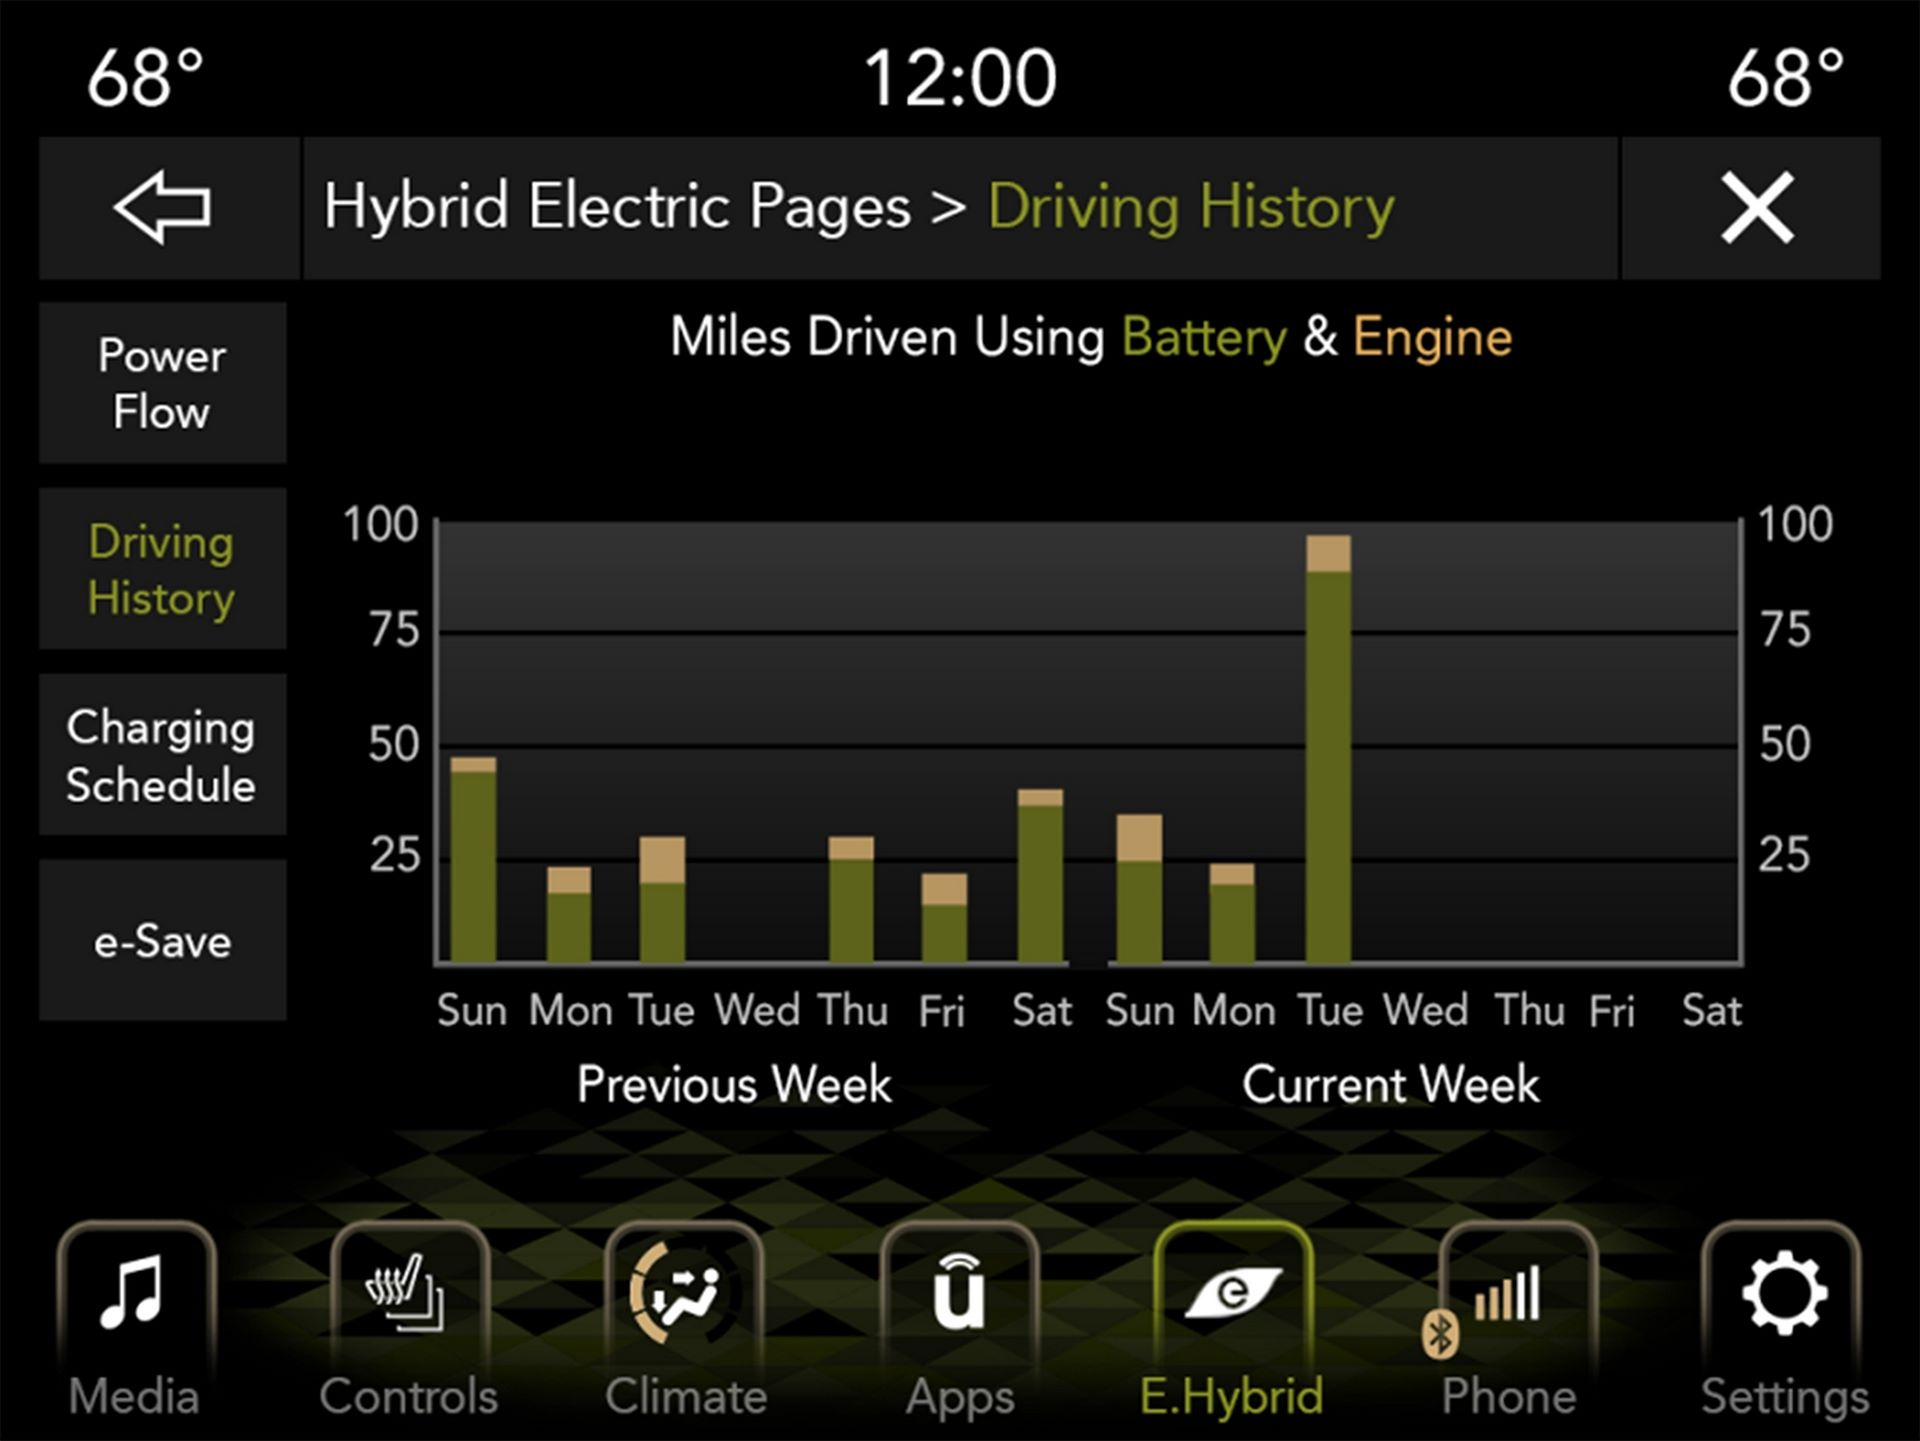 Drivers in the 2021 Jeep Wrangler 4xe can monitor and manage power flow via the Hybrid Electric Pages in the Uconnect system.